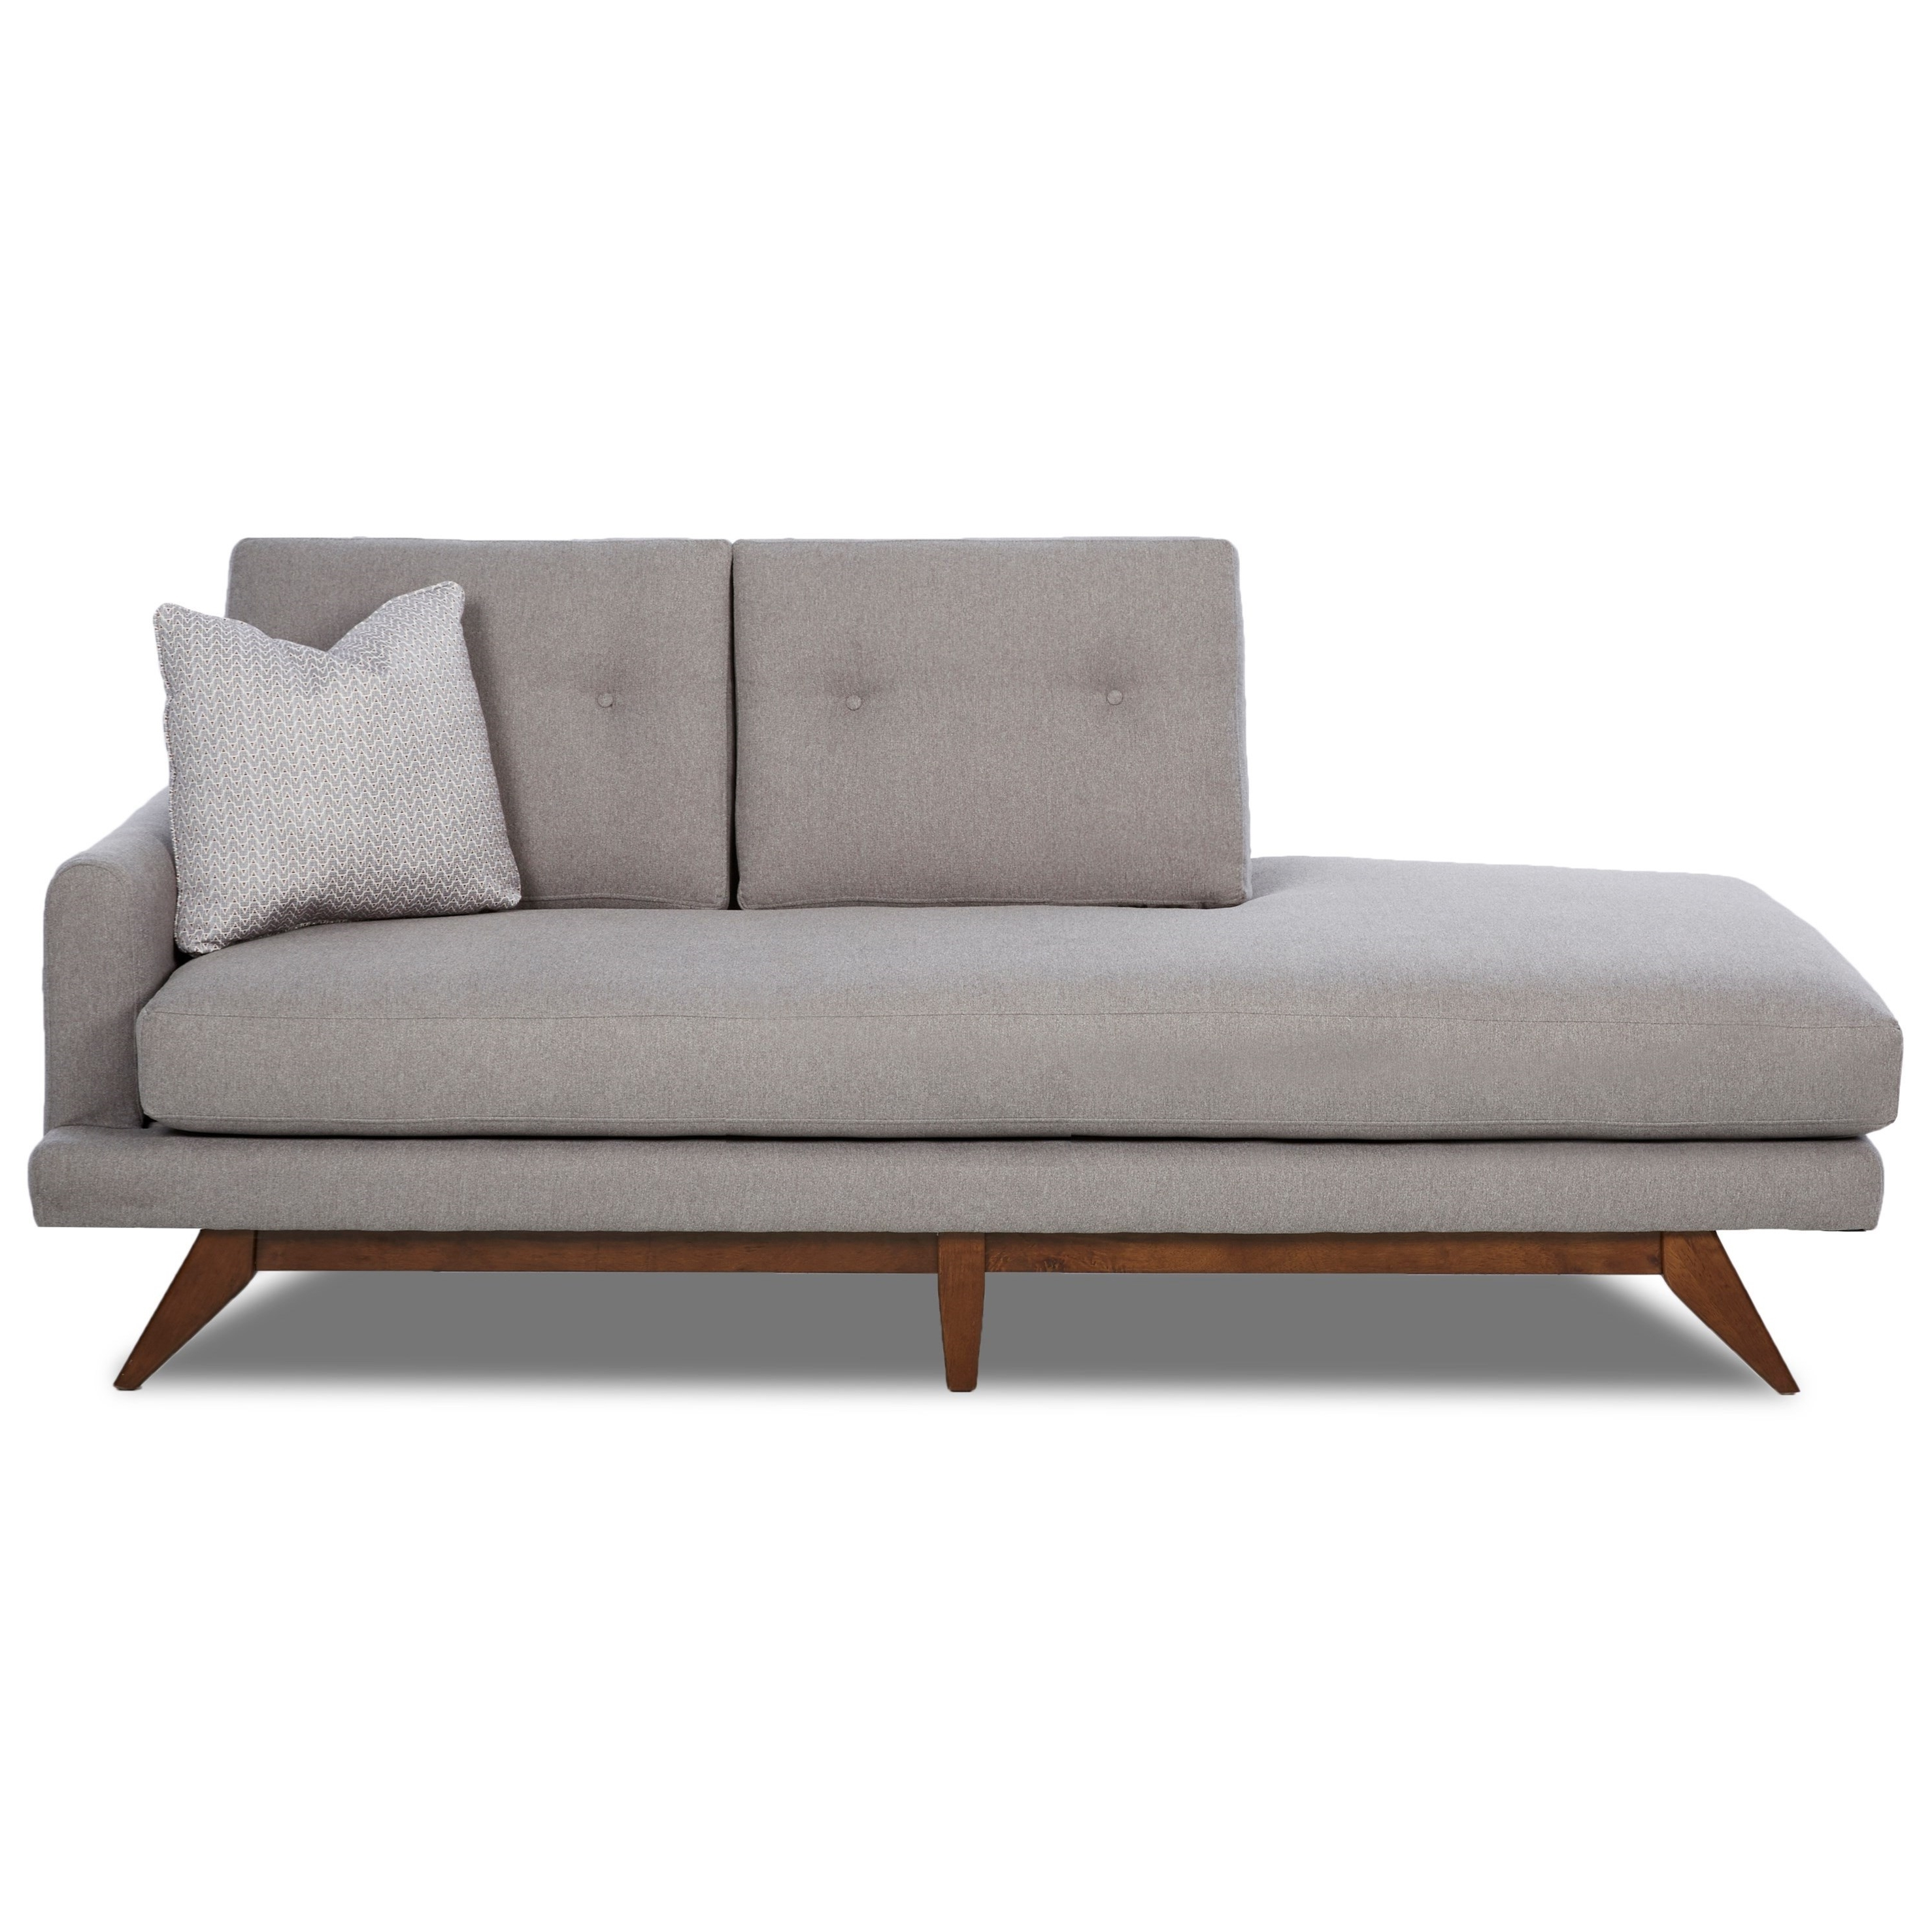 Preferred Mid Century Modern Chaise Lounges Regarding Sofa : Mesmerizing Mid Century Modern Chaise Lounges Sofa Mid (View 6 of 15)